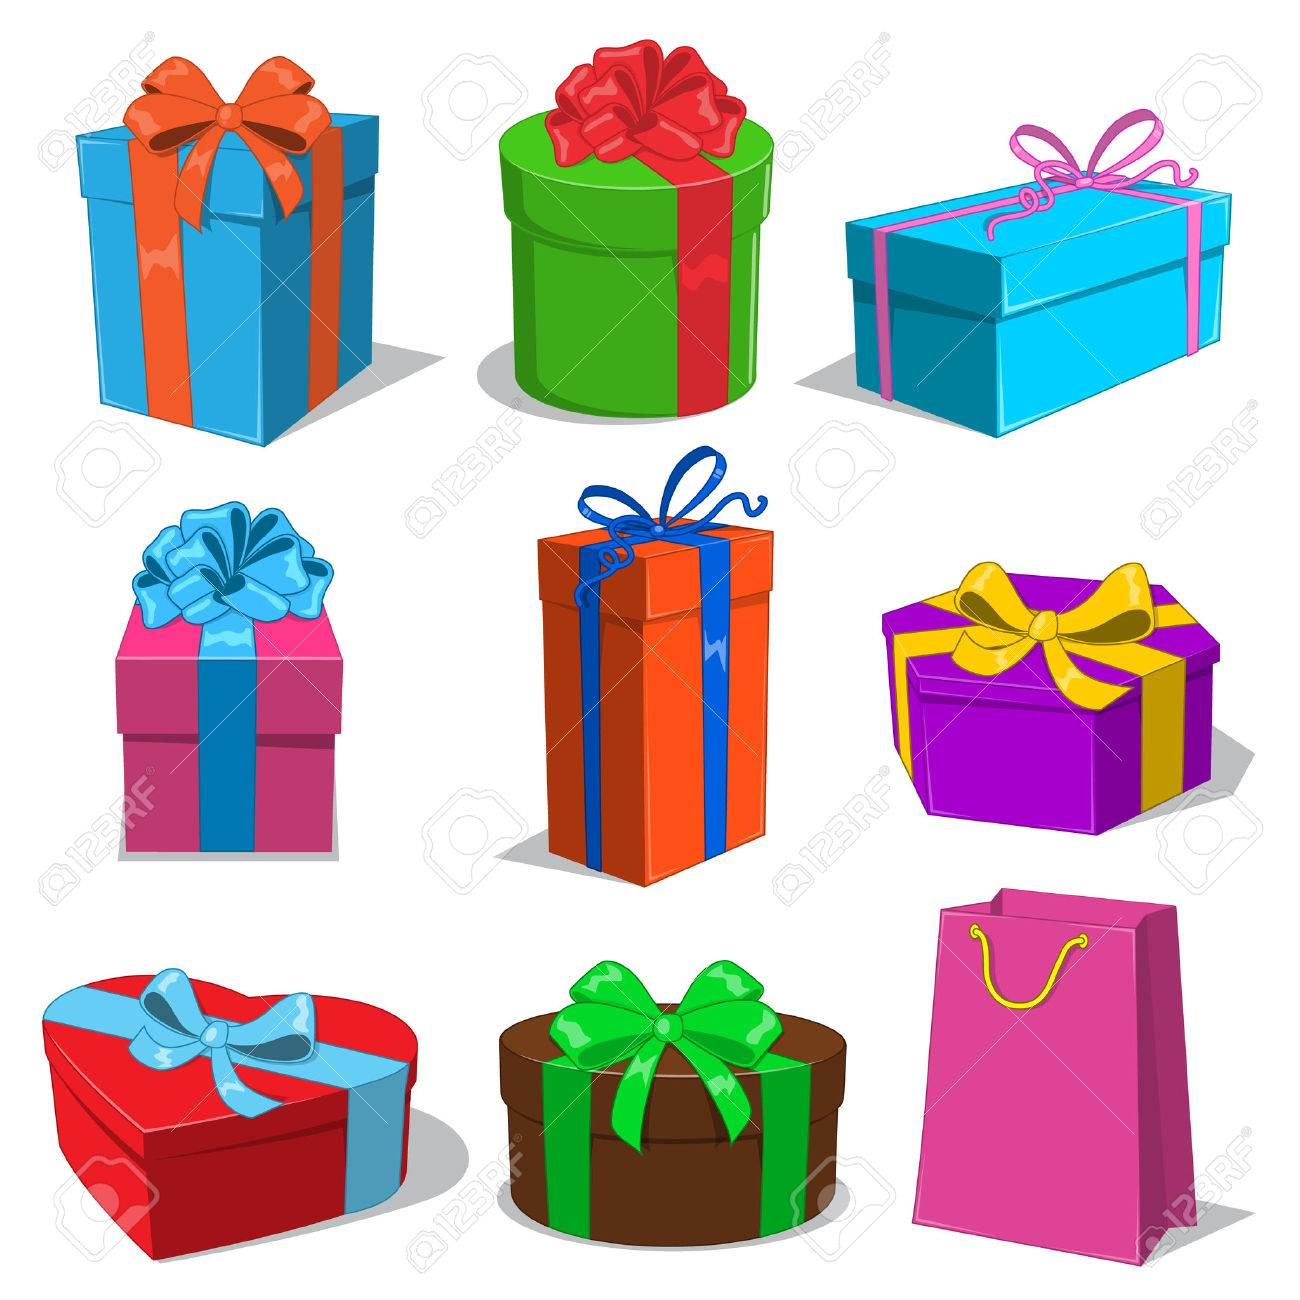 Present boxes collection. Stock Vector - 36512438